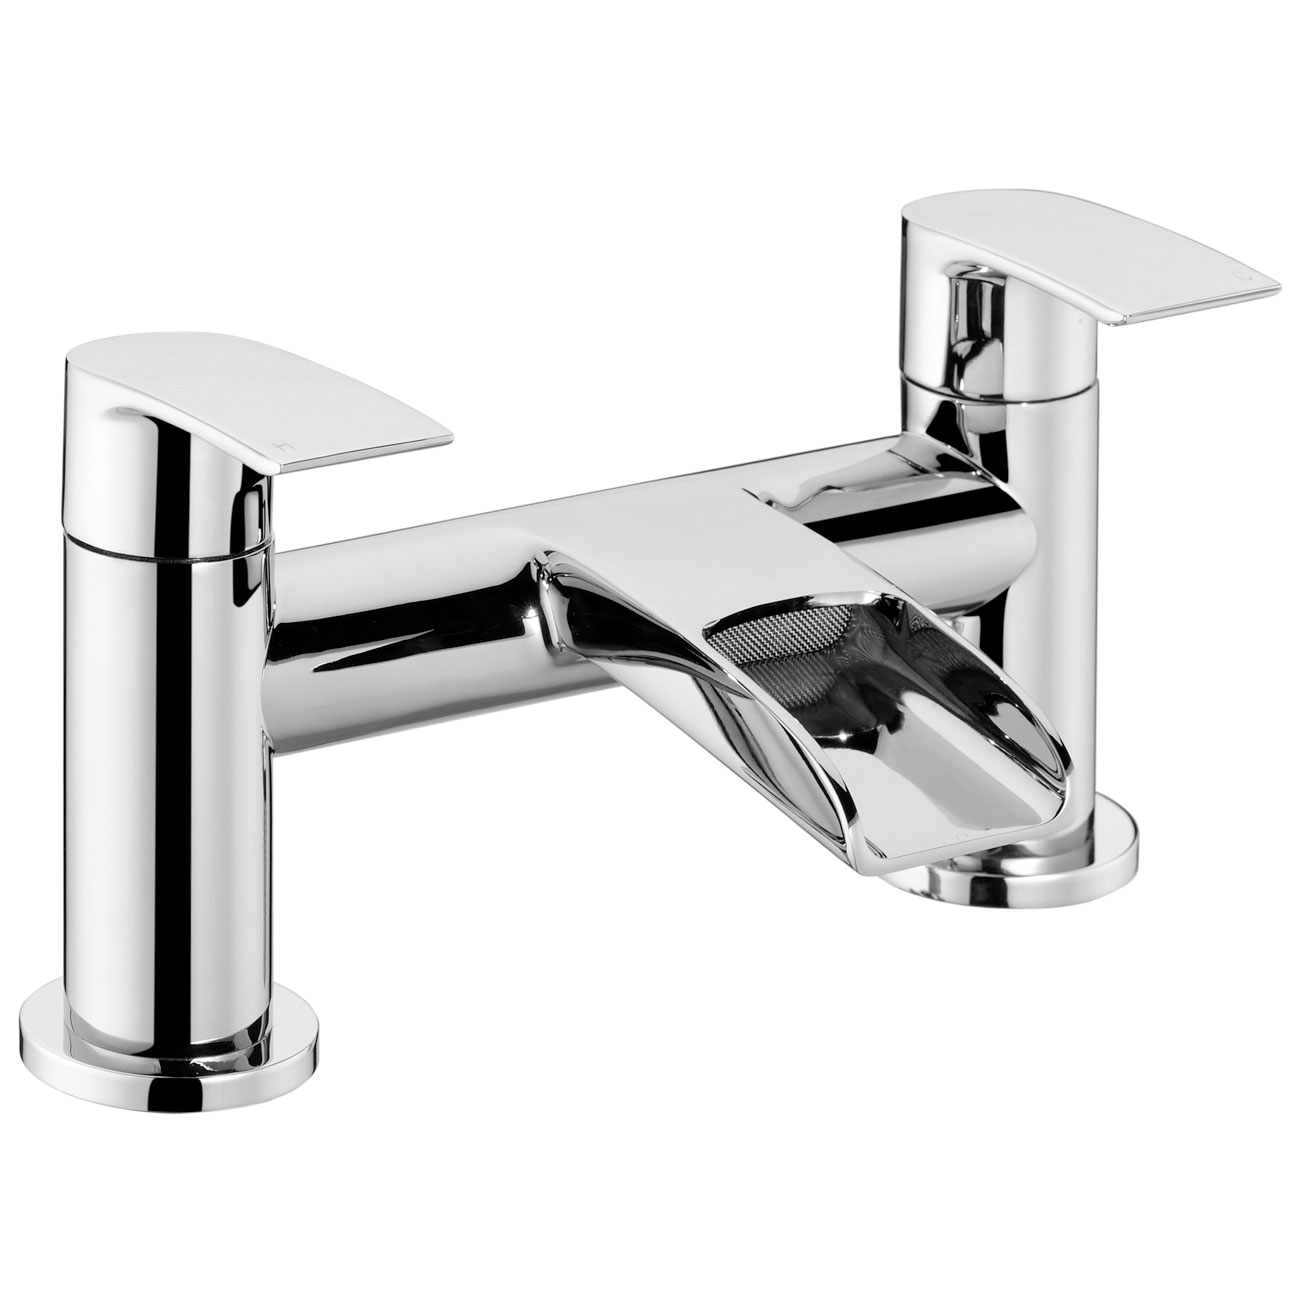 JTP Ravina Deck Mounted Bath Filler Tap - Chrome